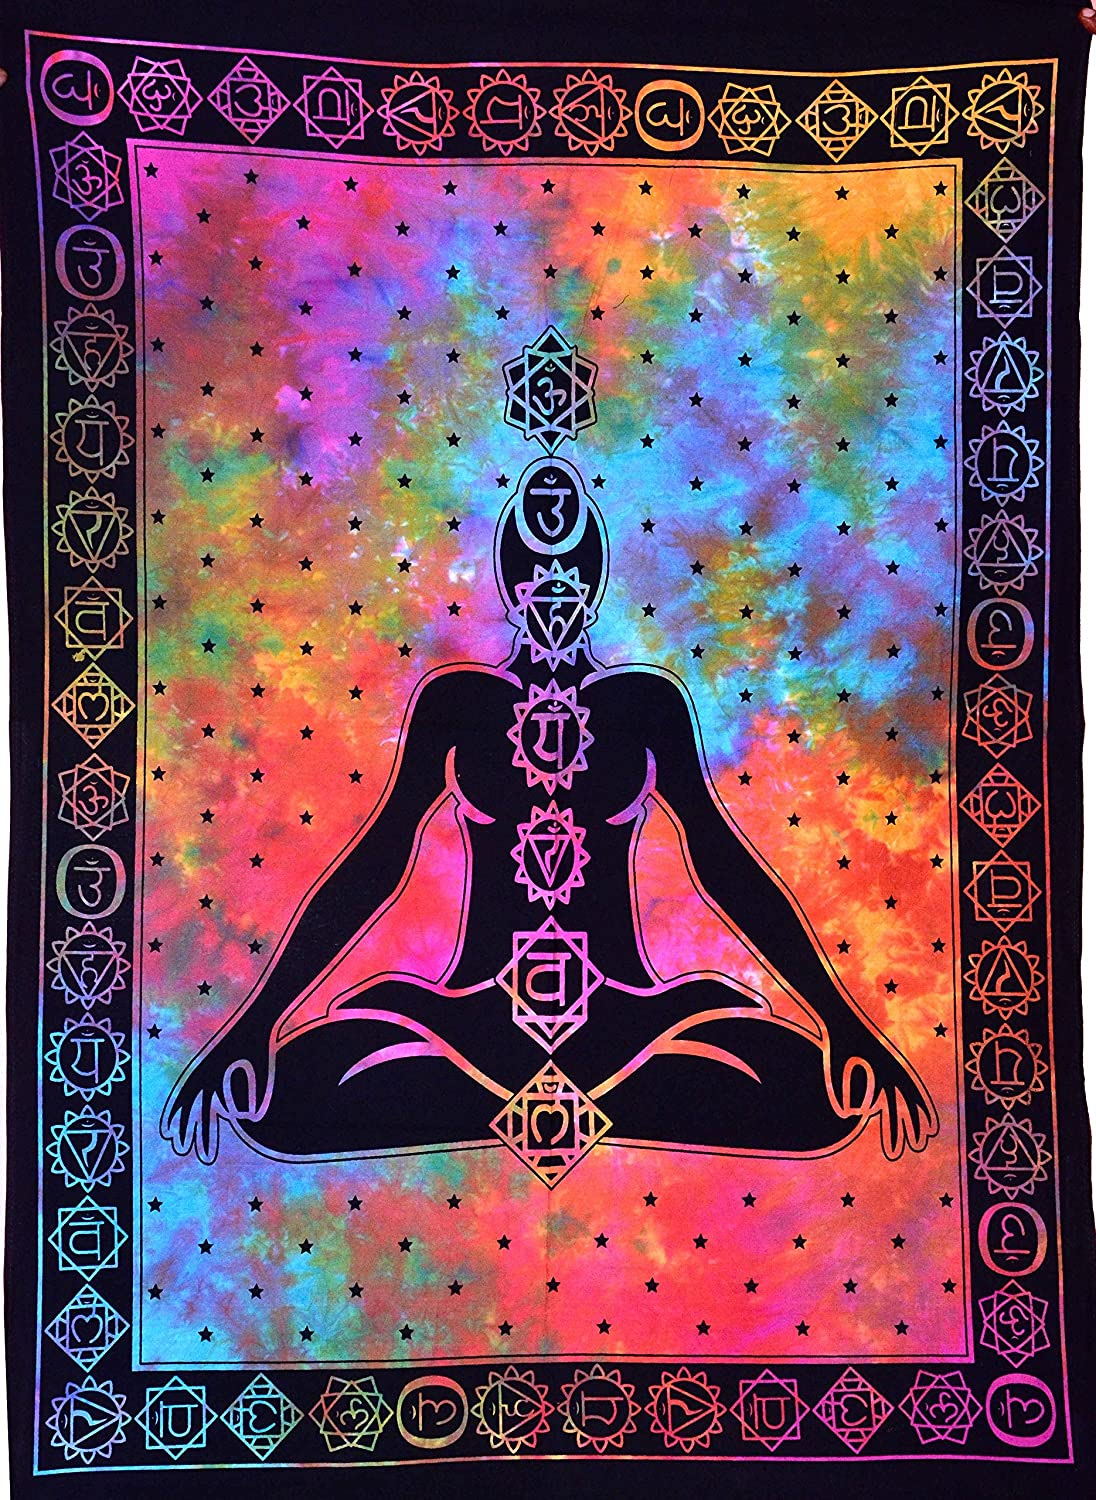 Seven Chakra Buddha Yoga Meditation Studio Room Decorations Tie Dye Hippie Psychedelic Small Tapestry Poster 7 chakras tapestries Meditating Peace Wall Art Hanging Decor (Multi, 30X40 inches)